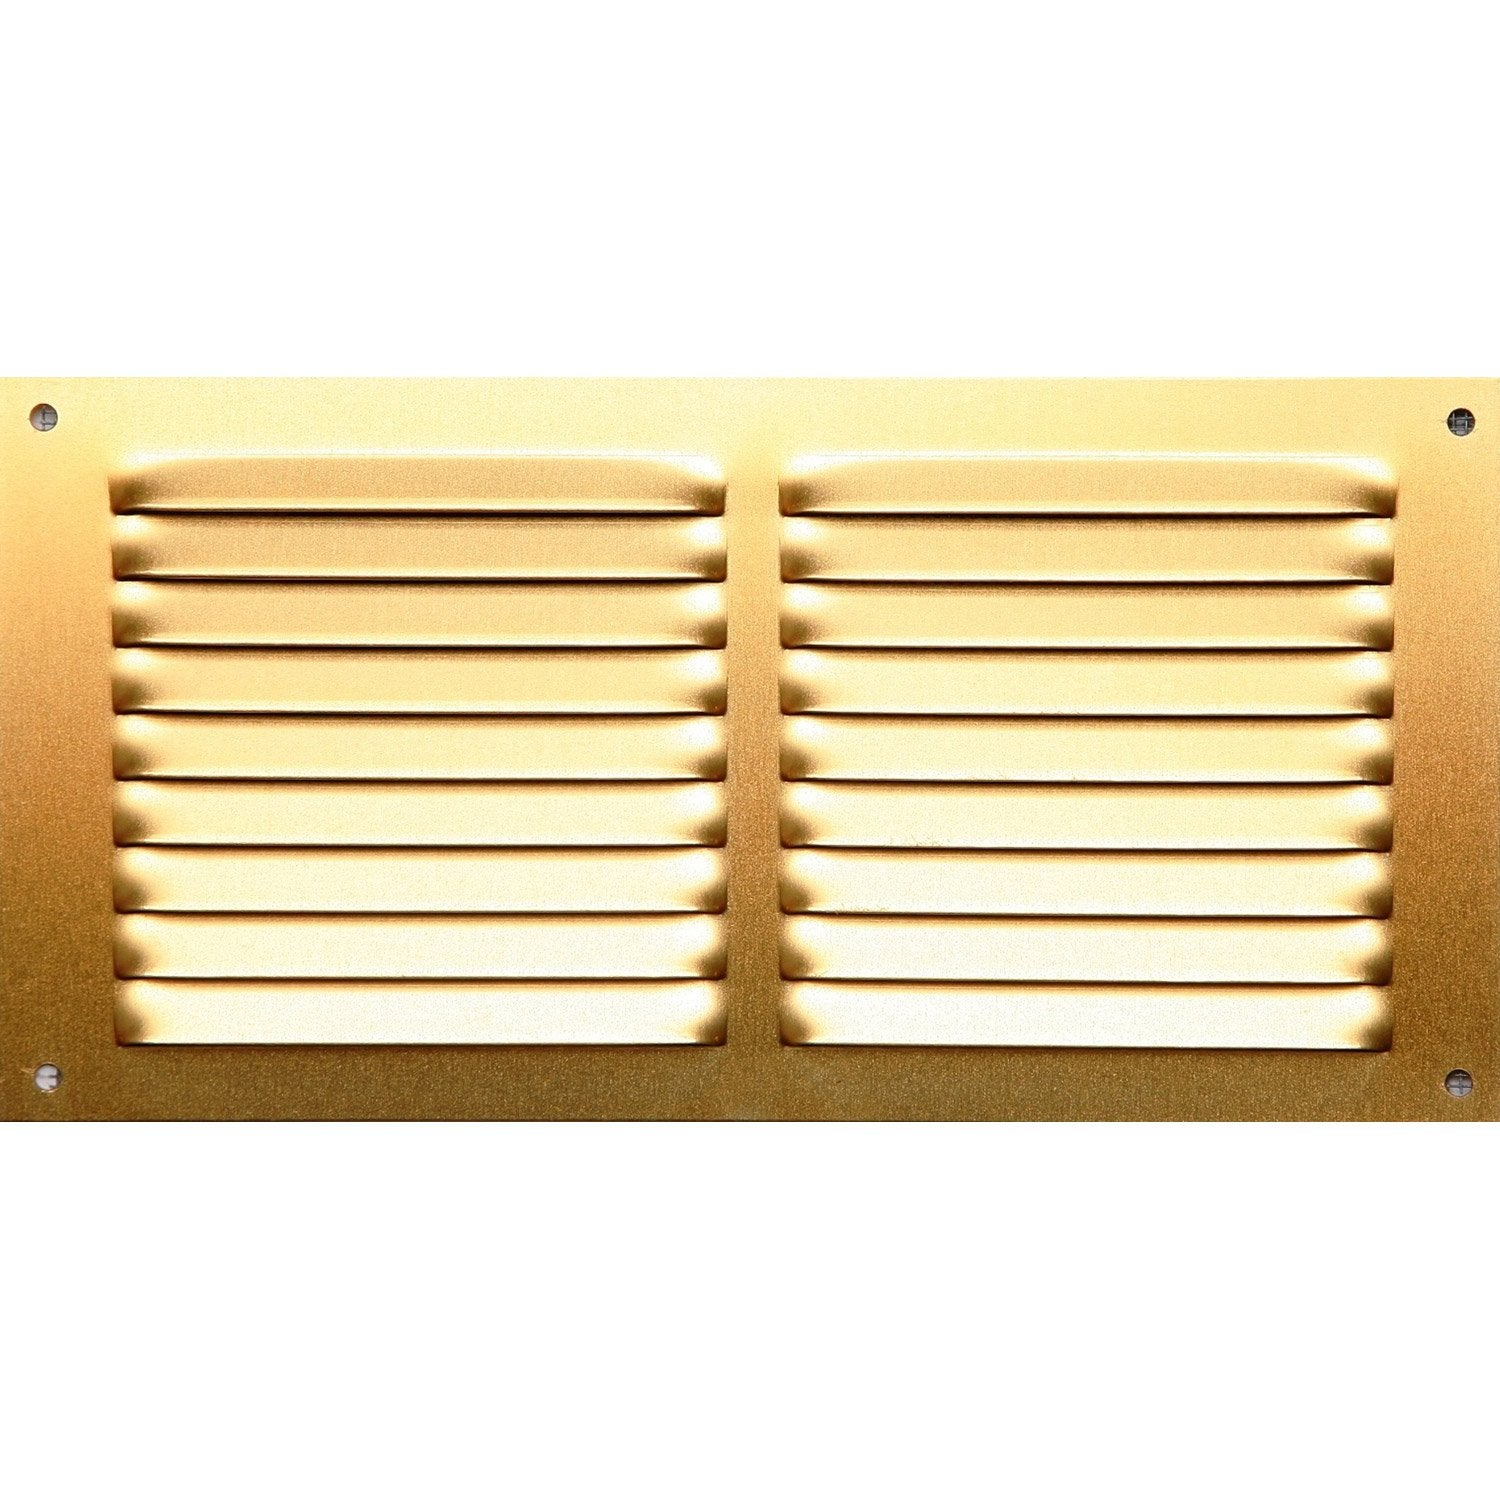 Aeration fenetre leroy merlin grille d 39 a ration pvc - Grille aeration fenetre pvc ...